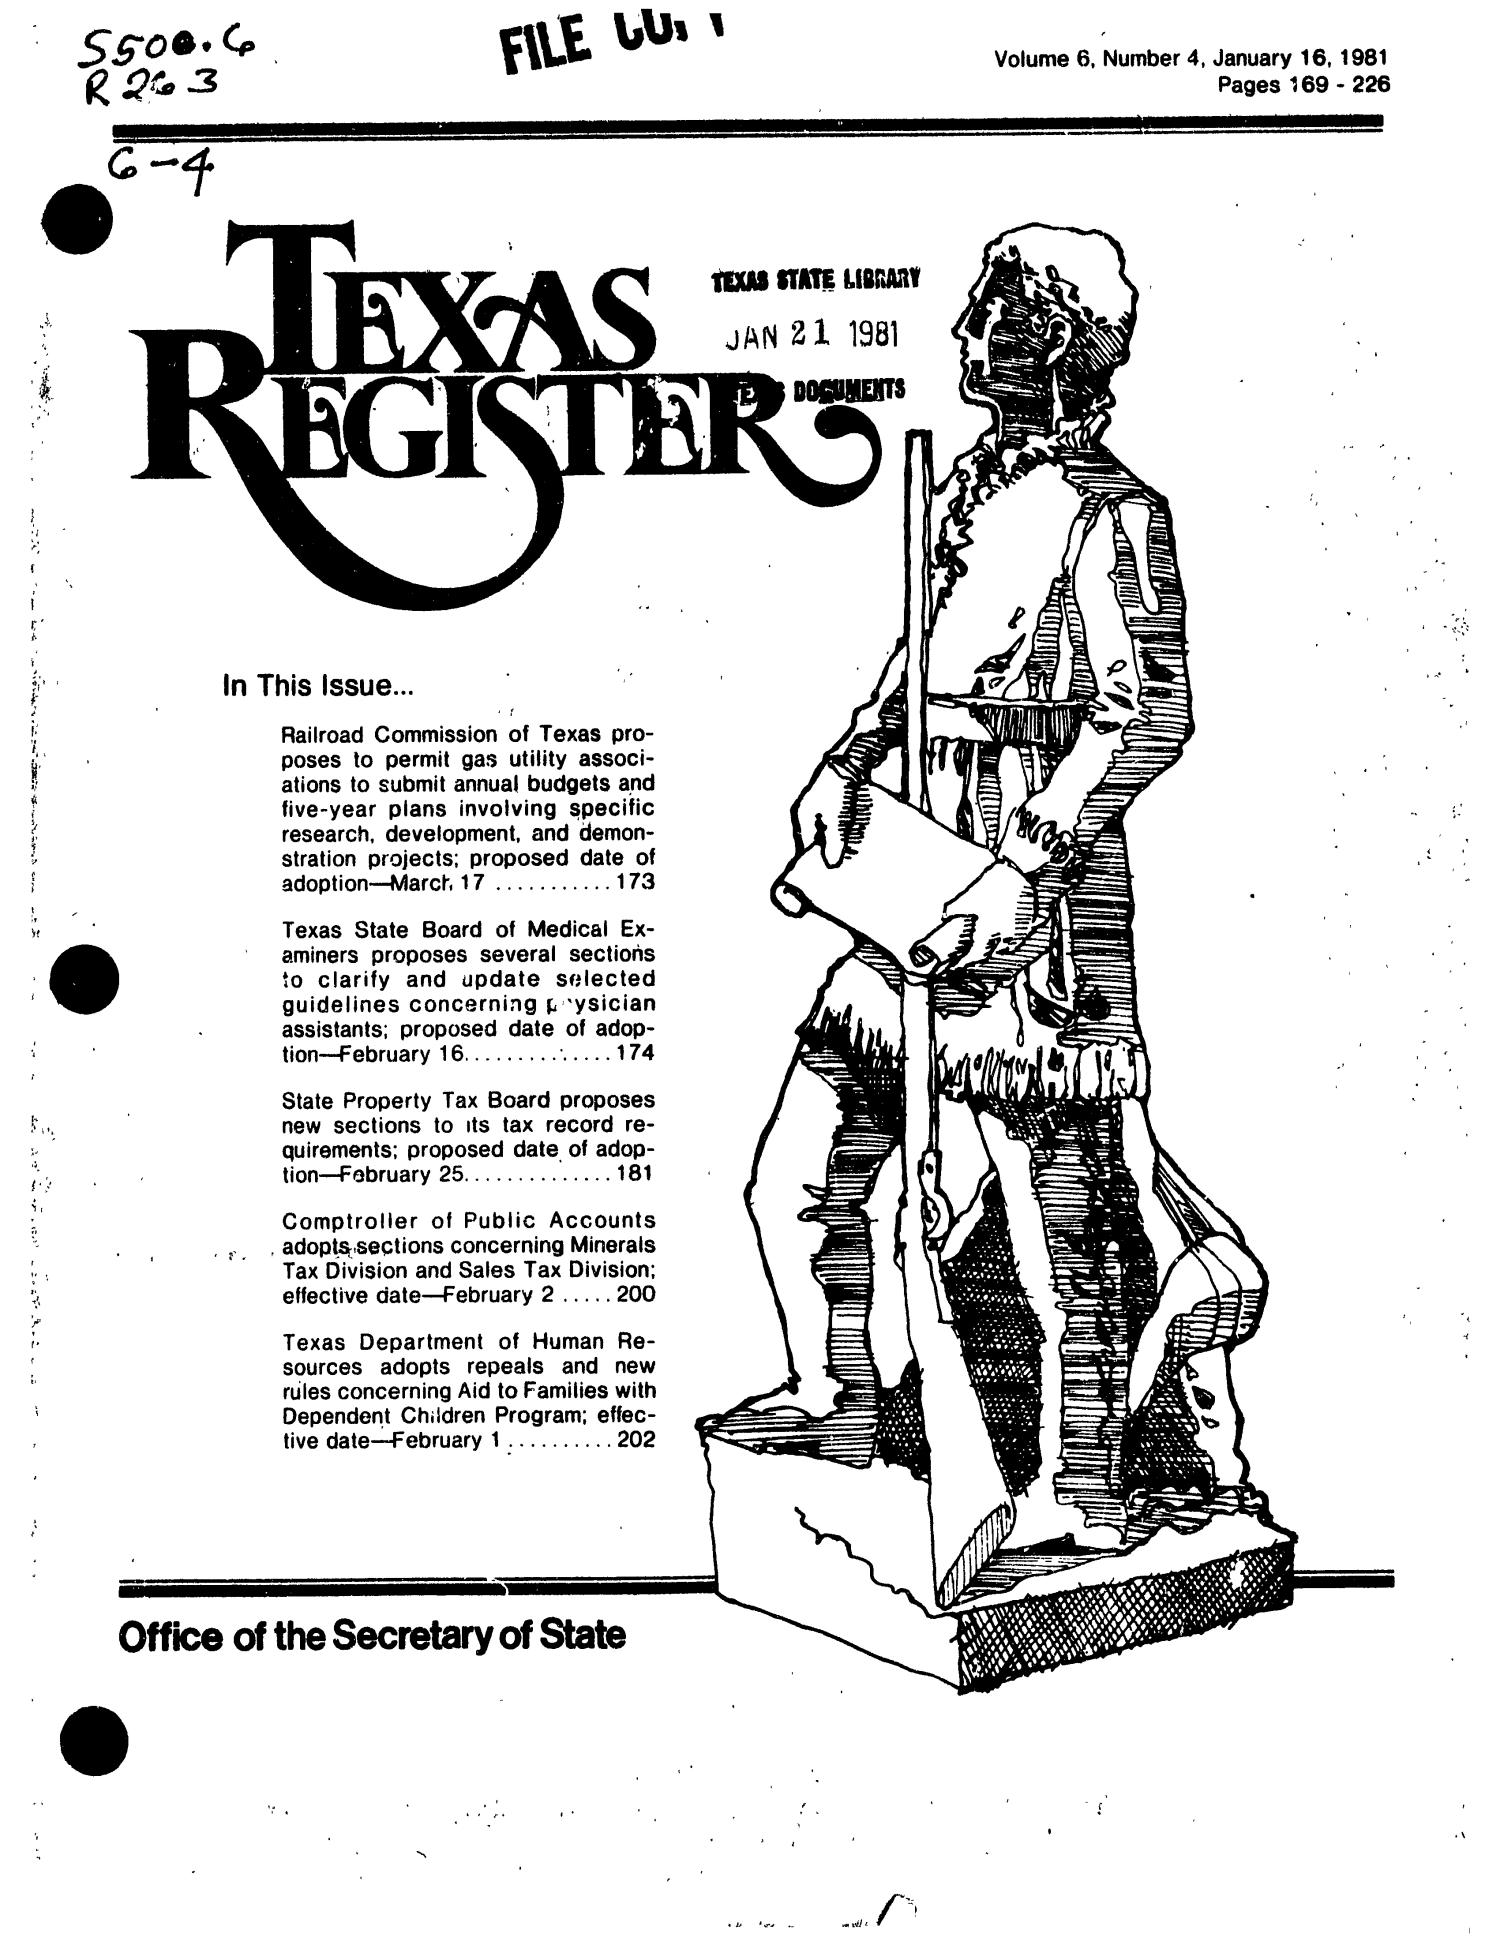 Texas Register, Volume 6, Number 4, Pages 168-226, January 16, 1981                                                                                                      Title Page